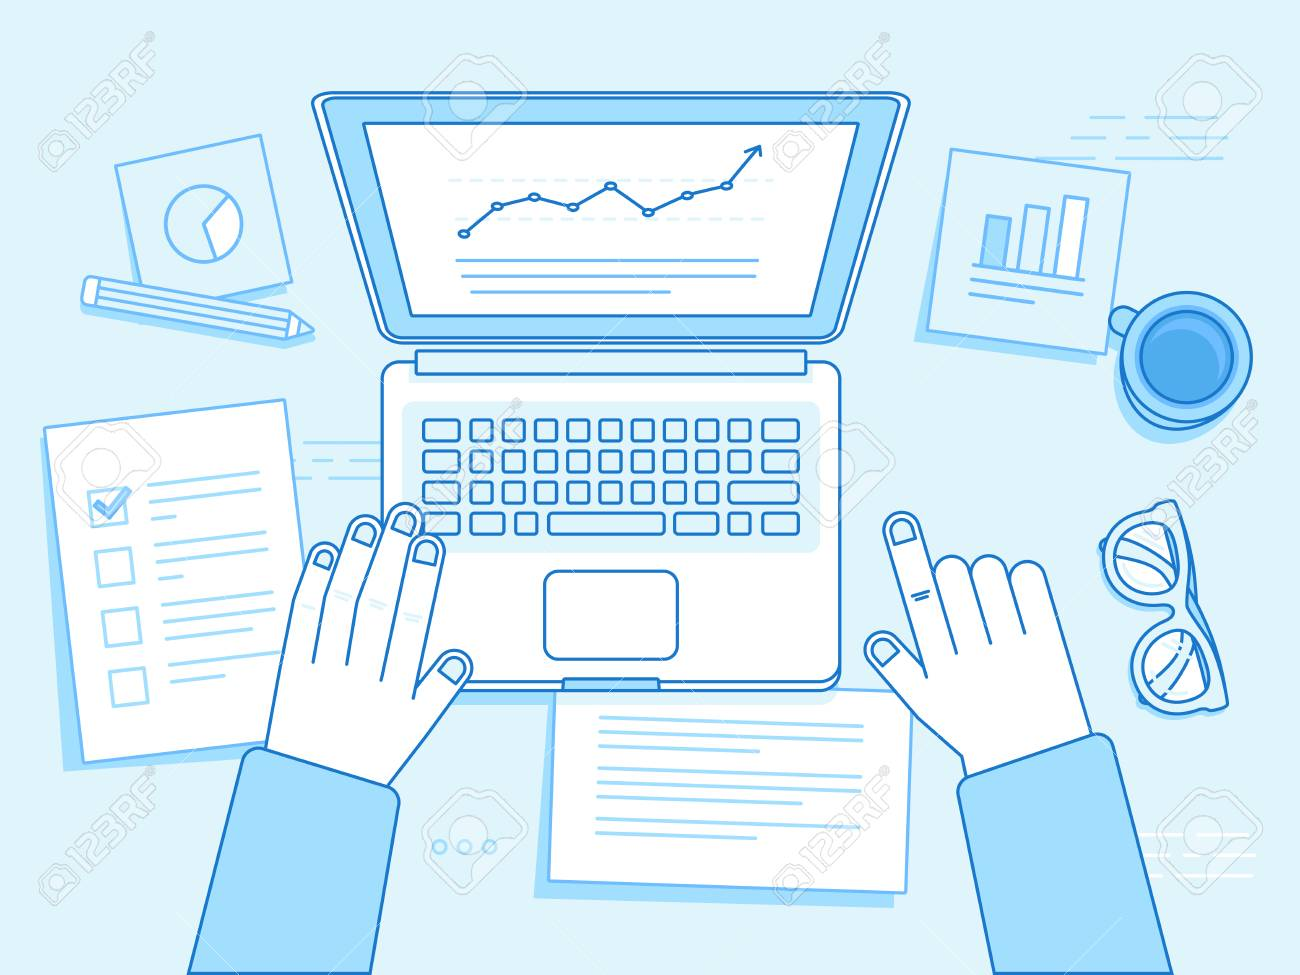 Vector business illustration in trendy linear style and blue colors related to project management, business strategy and financial development - hands with laptop, coffee cup, glasses and documents - 91079685